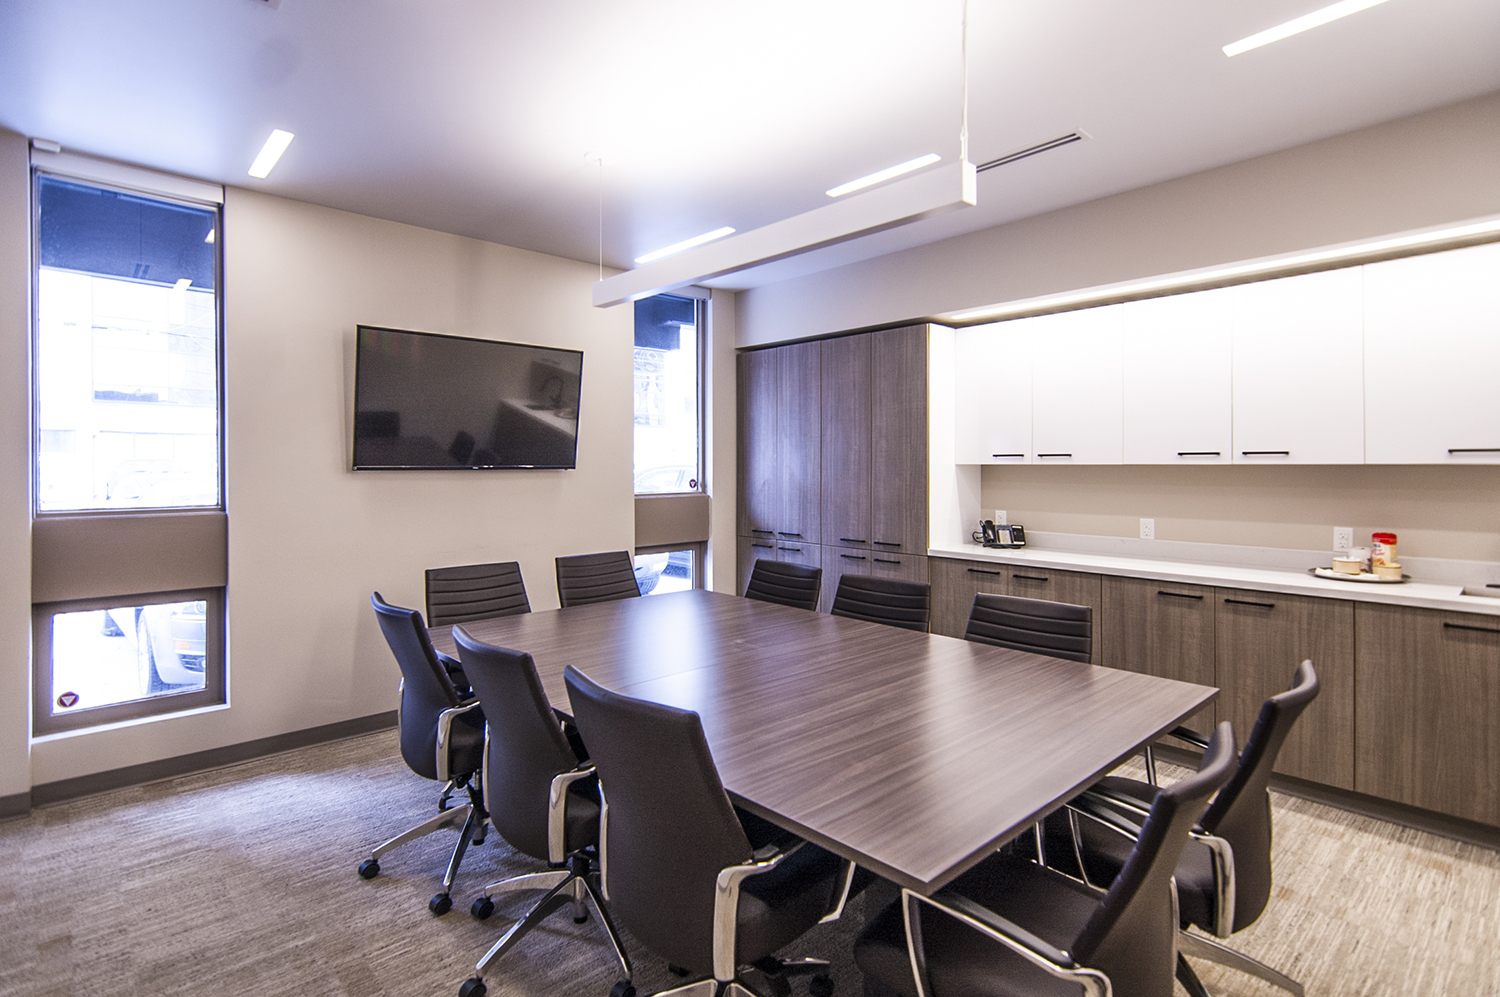 Fast Trippier Law Offices, interior photo of meeting room / Photo: Derrick Finch